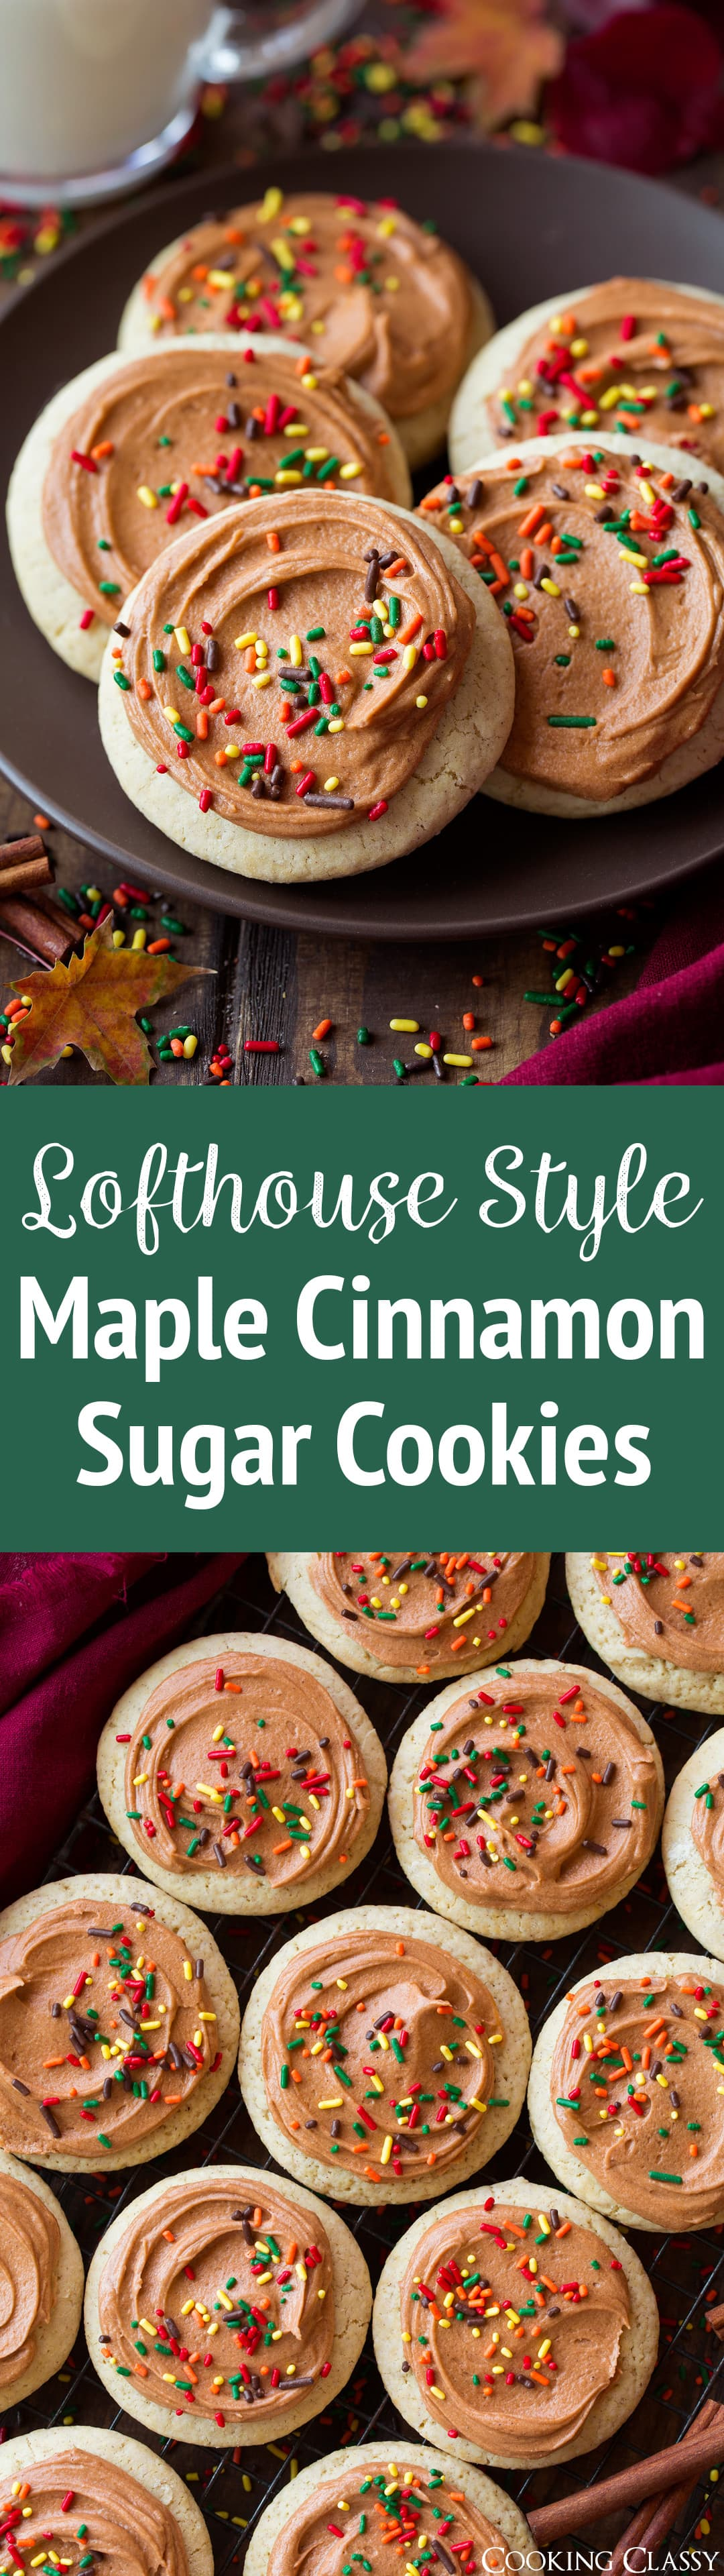 Soft Frosted Maple Cinnamon Sugar Cookies - these are melt-in-your-mouth insanely delicious! Love the texture and flavor of these cookies as did everyone else! #maplecinnamon #cookies #sugarcookies #lofthousecookies #fall #recipe